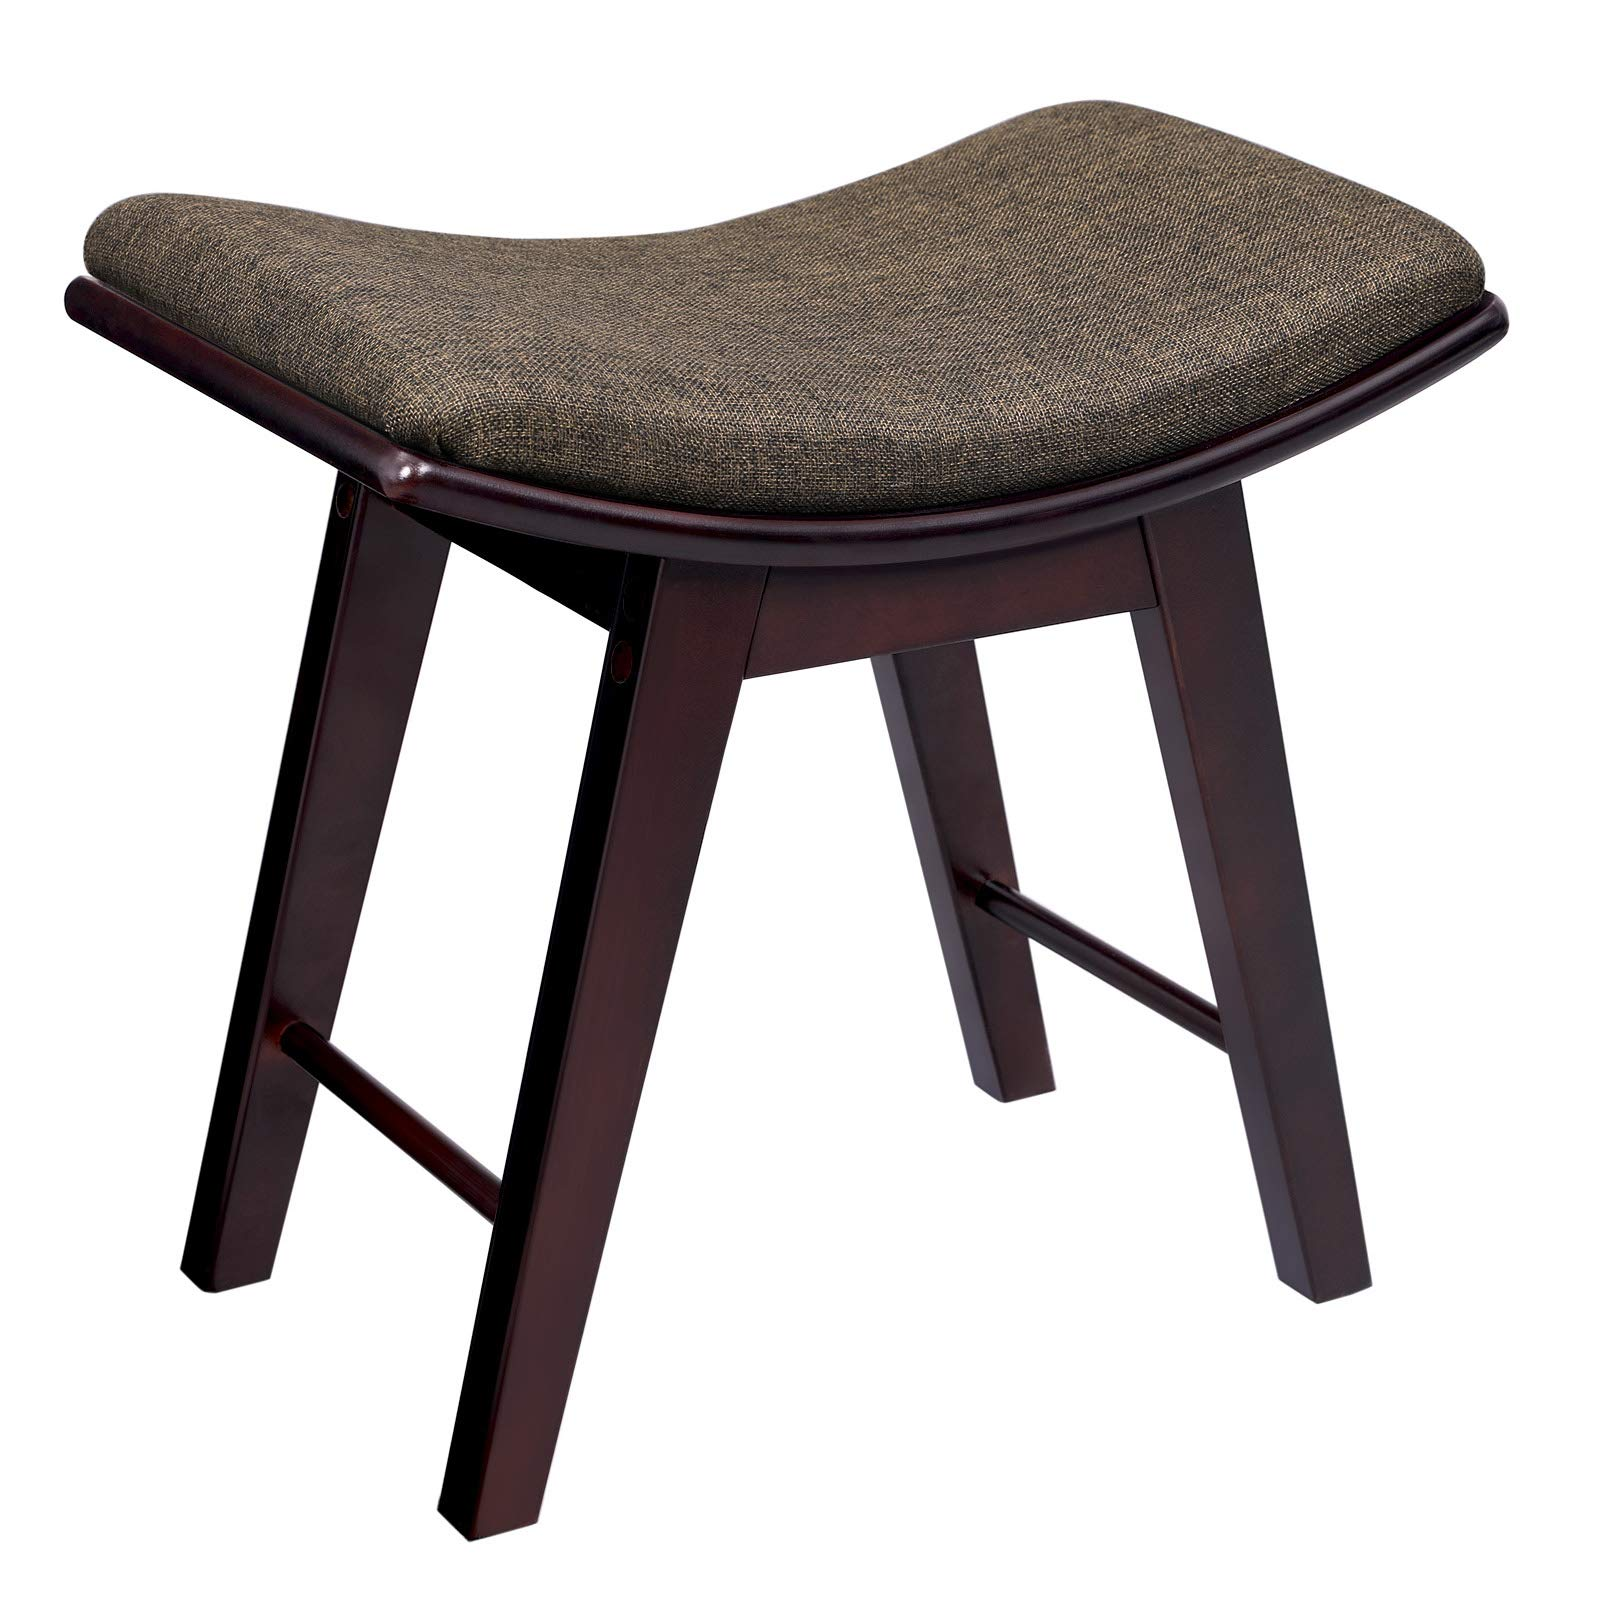 SONGMICS Vanity Stool, Modern Makeup Dressing Stool with Concave Seat Surface, Padded Bench with Rubberwood Legs, Capacity 286lb, Easy Assembly, Brown URDS51BR by SONGMICS